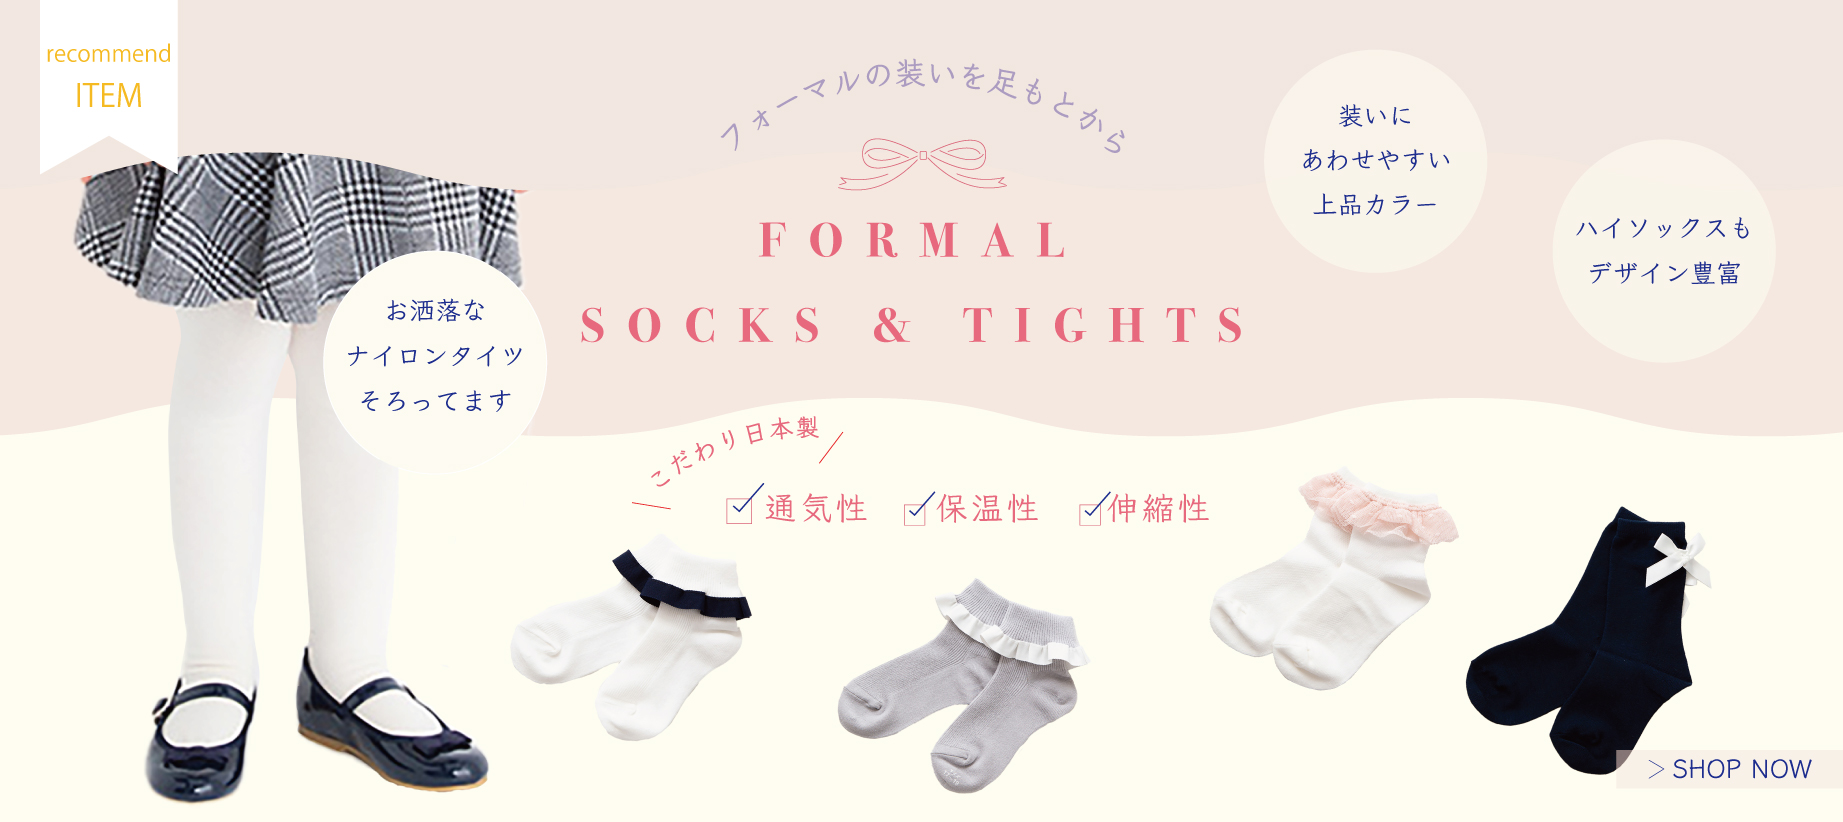 formal socks & tights